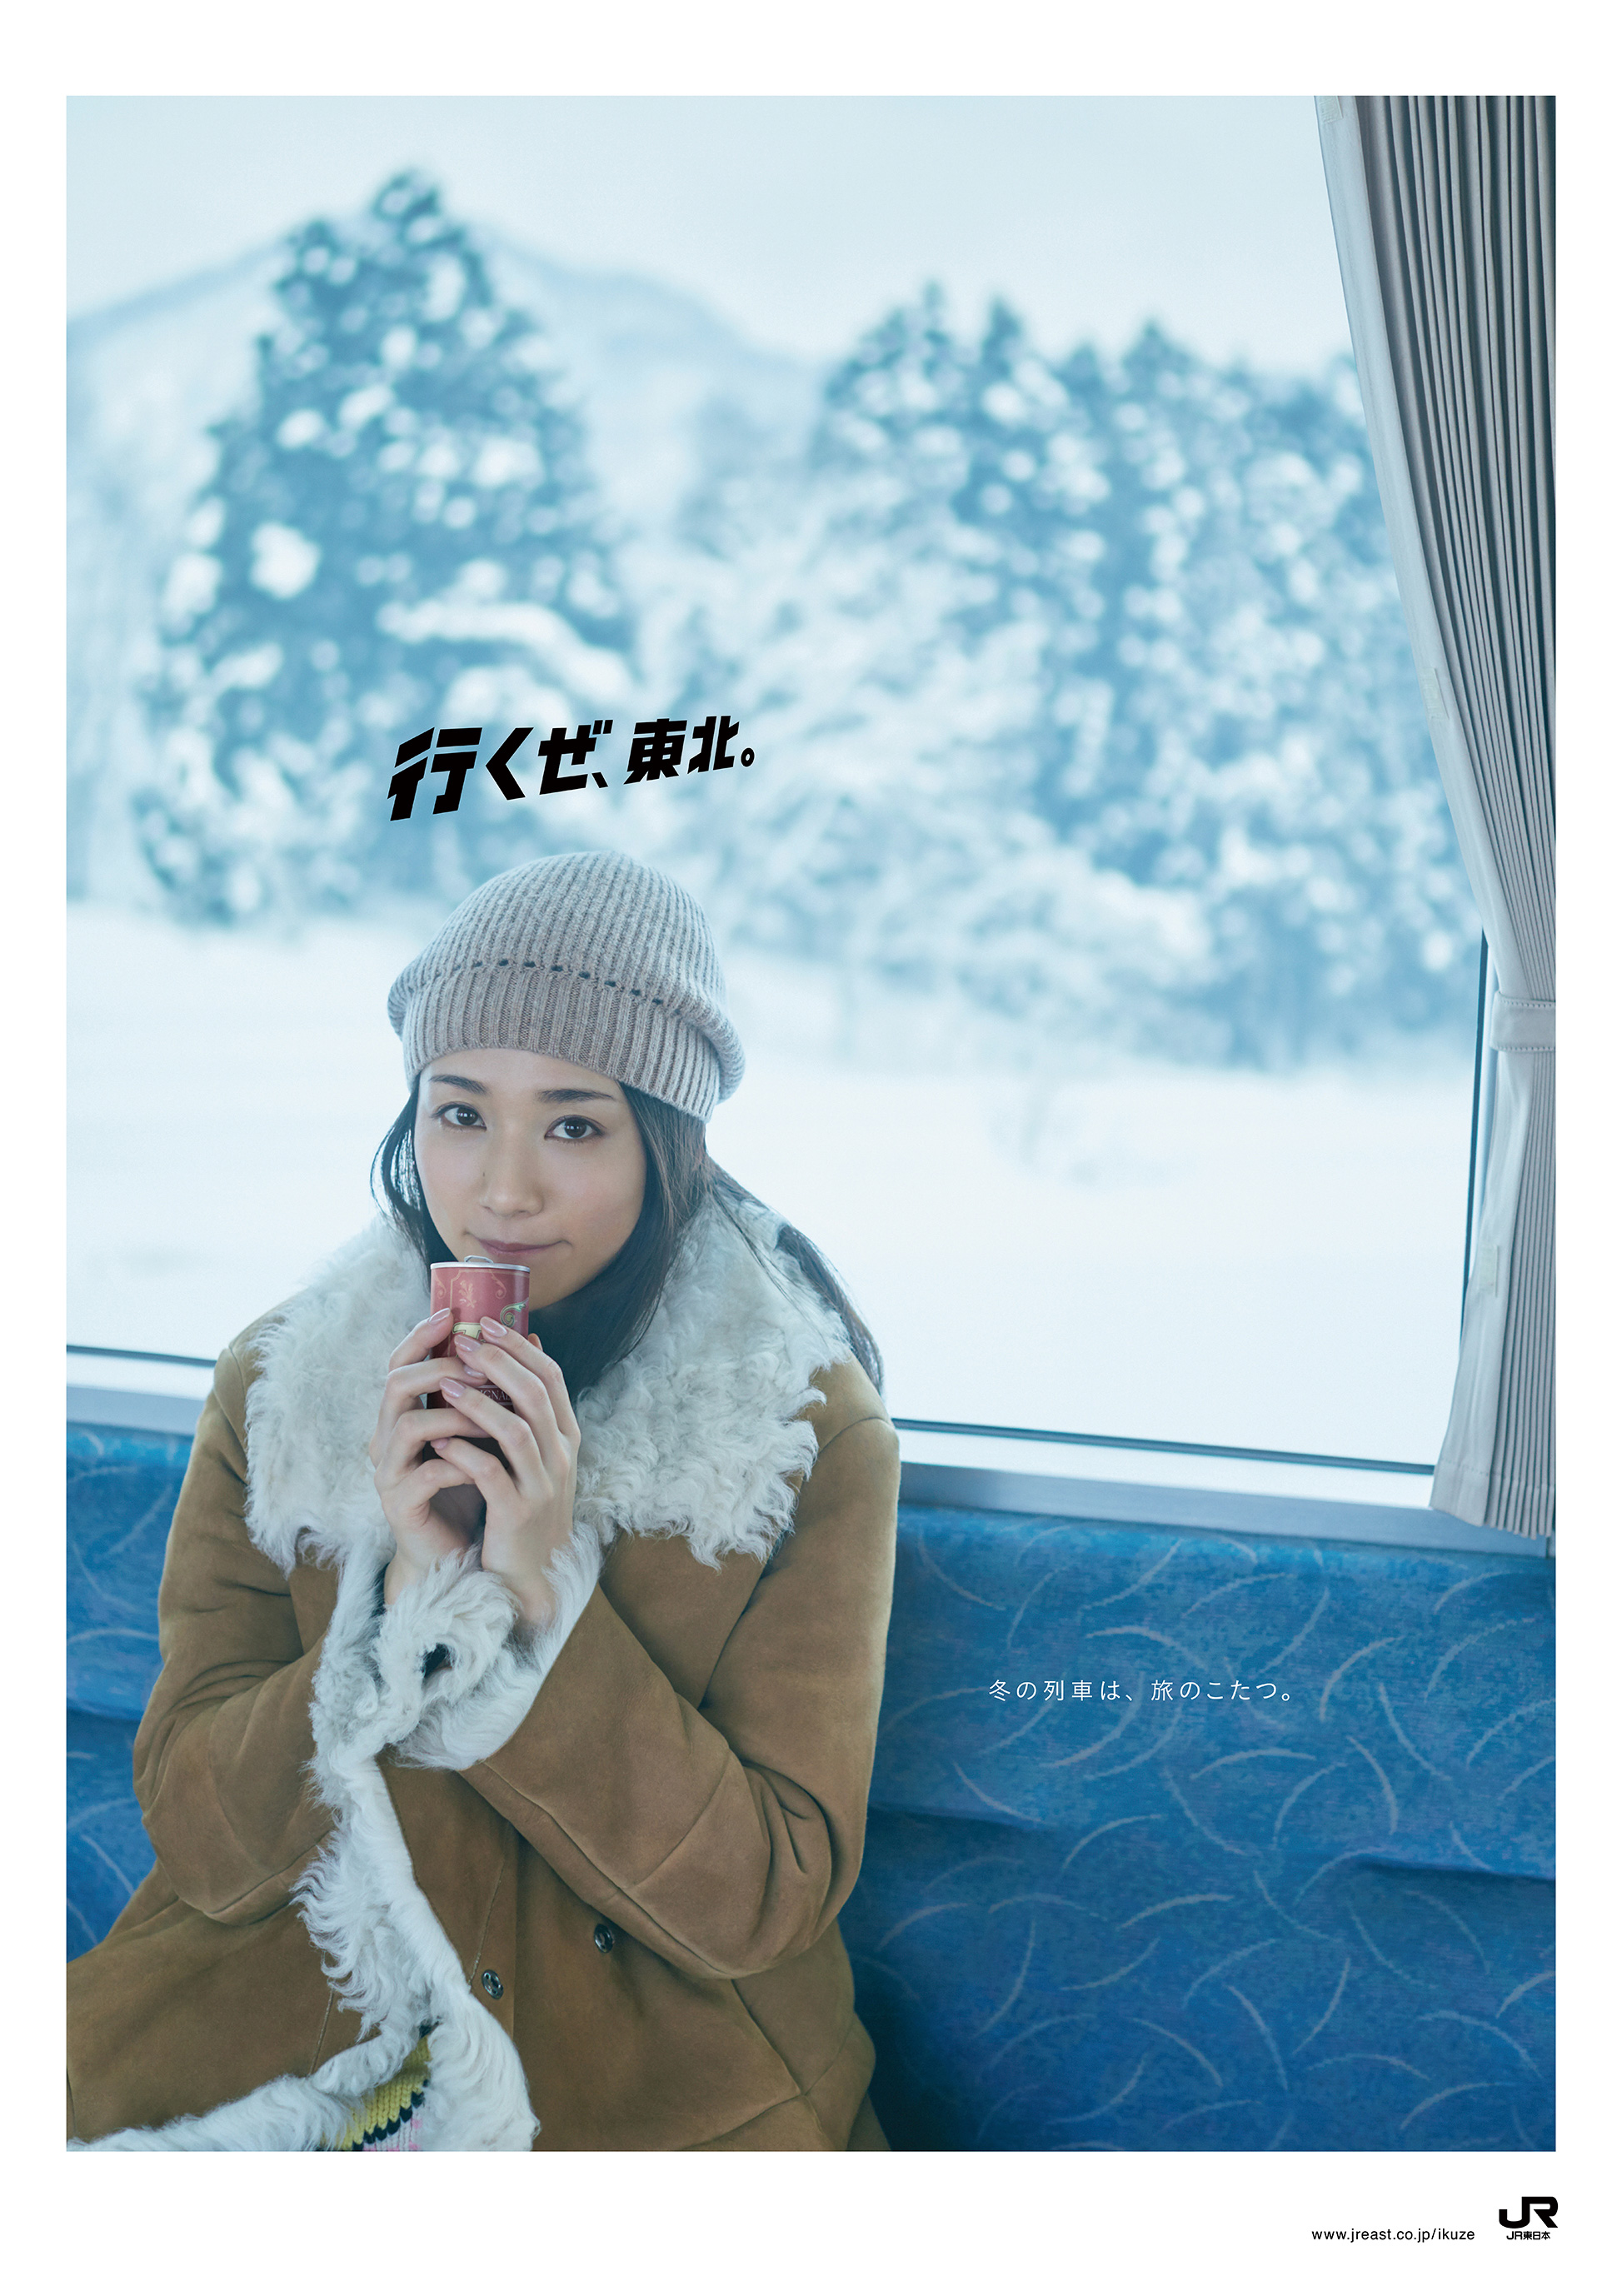 11.JR_ikuze_2015_winter1_B1_talent_151006ol